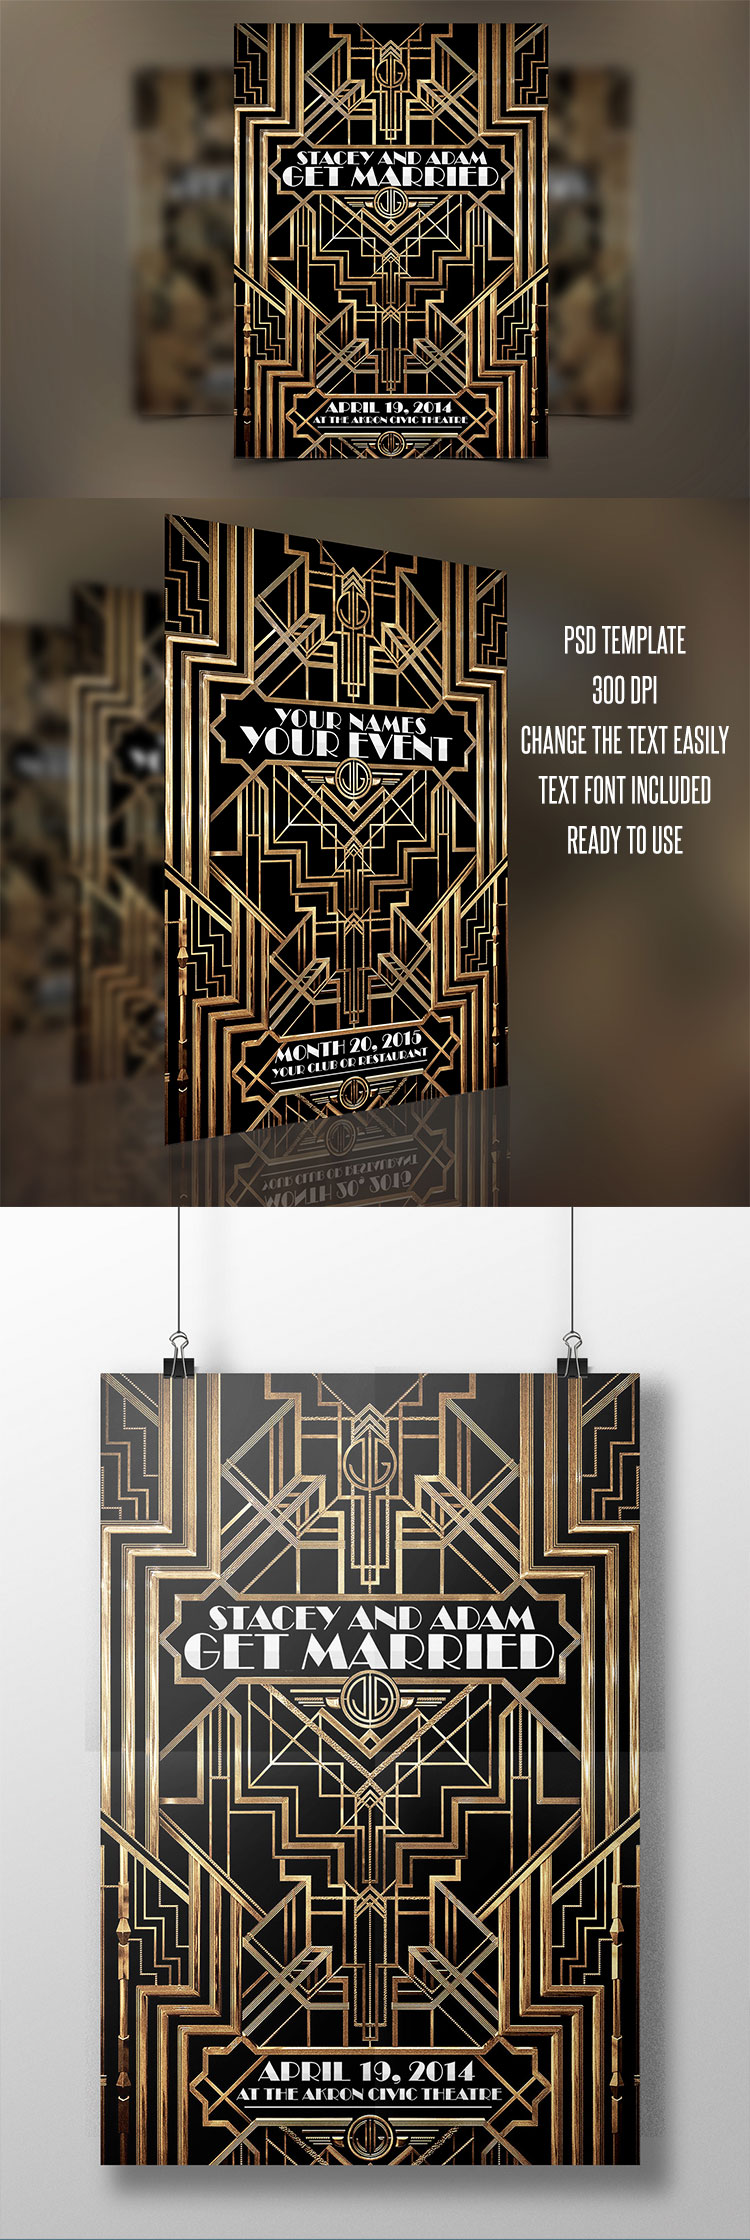 The Great Gatsby Flyer Template PSD